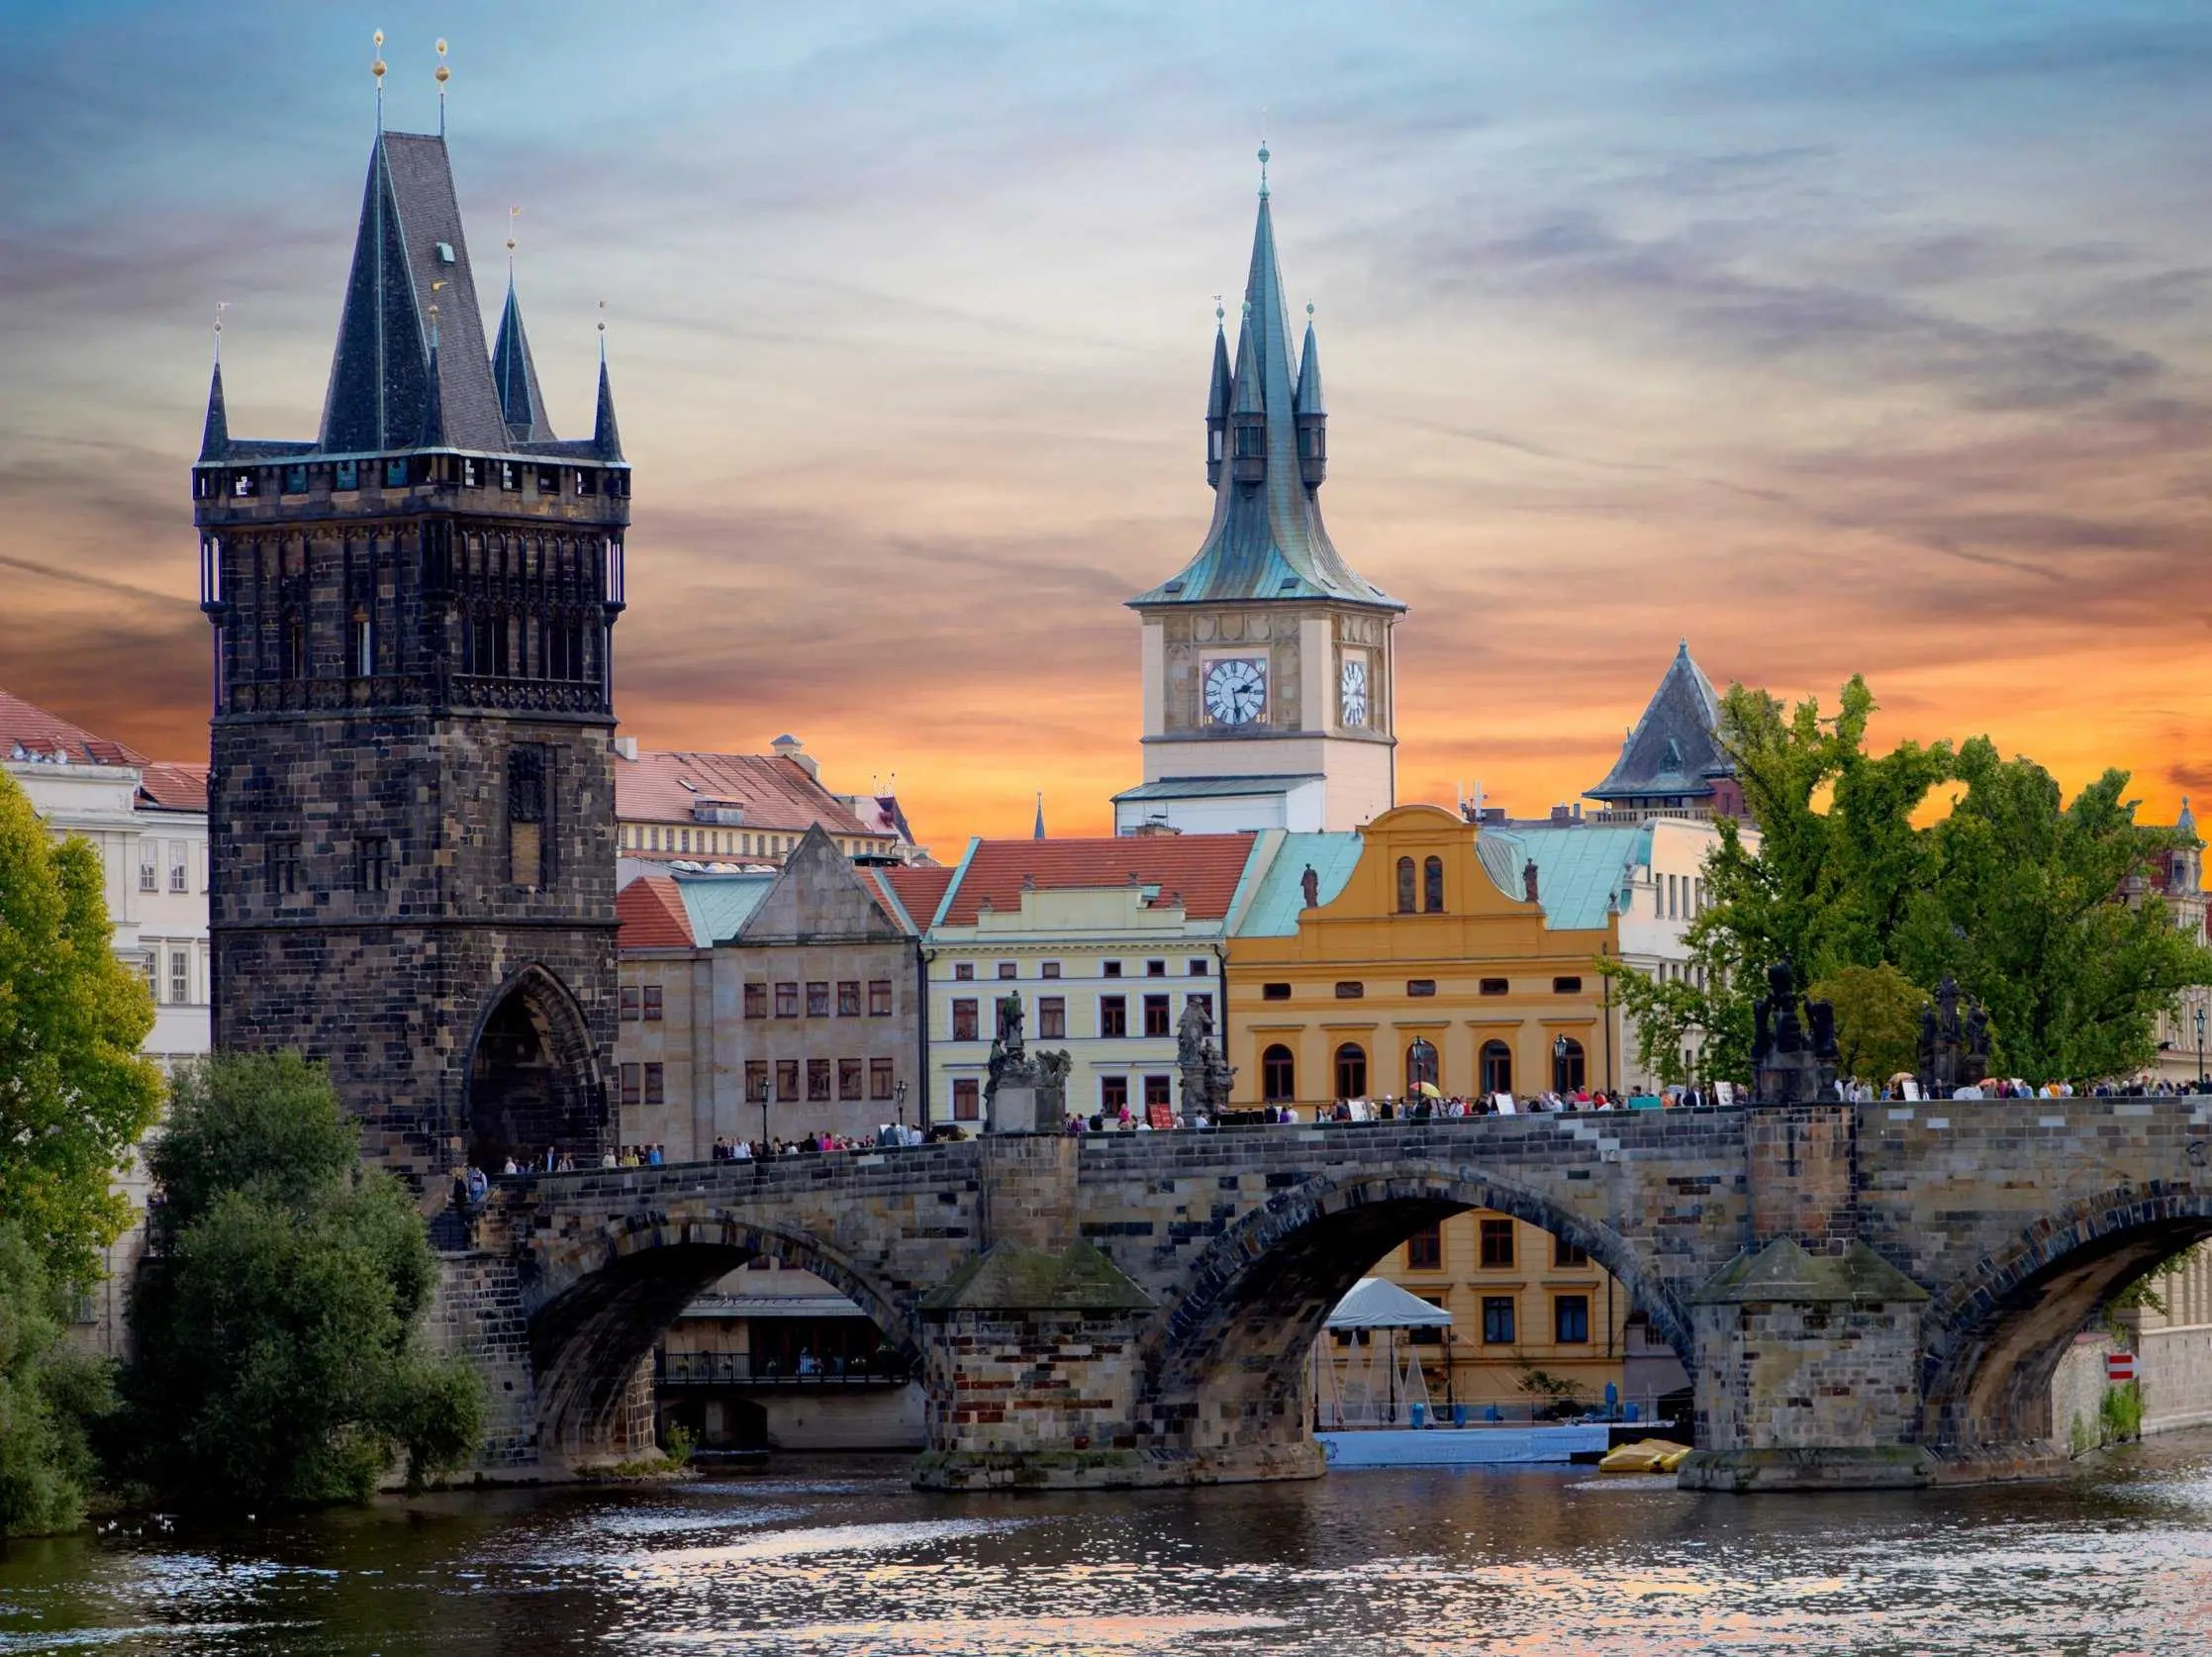 Walk across the 612-year-old Charles Bridge in Prague, Czech Republic.